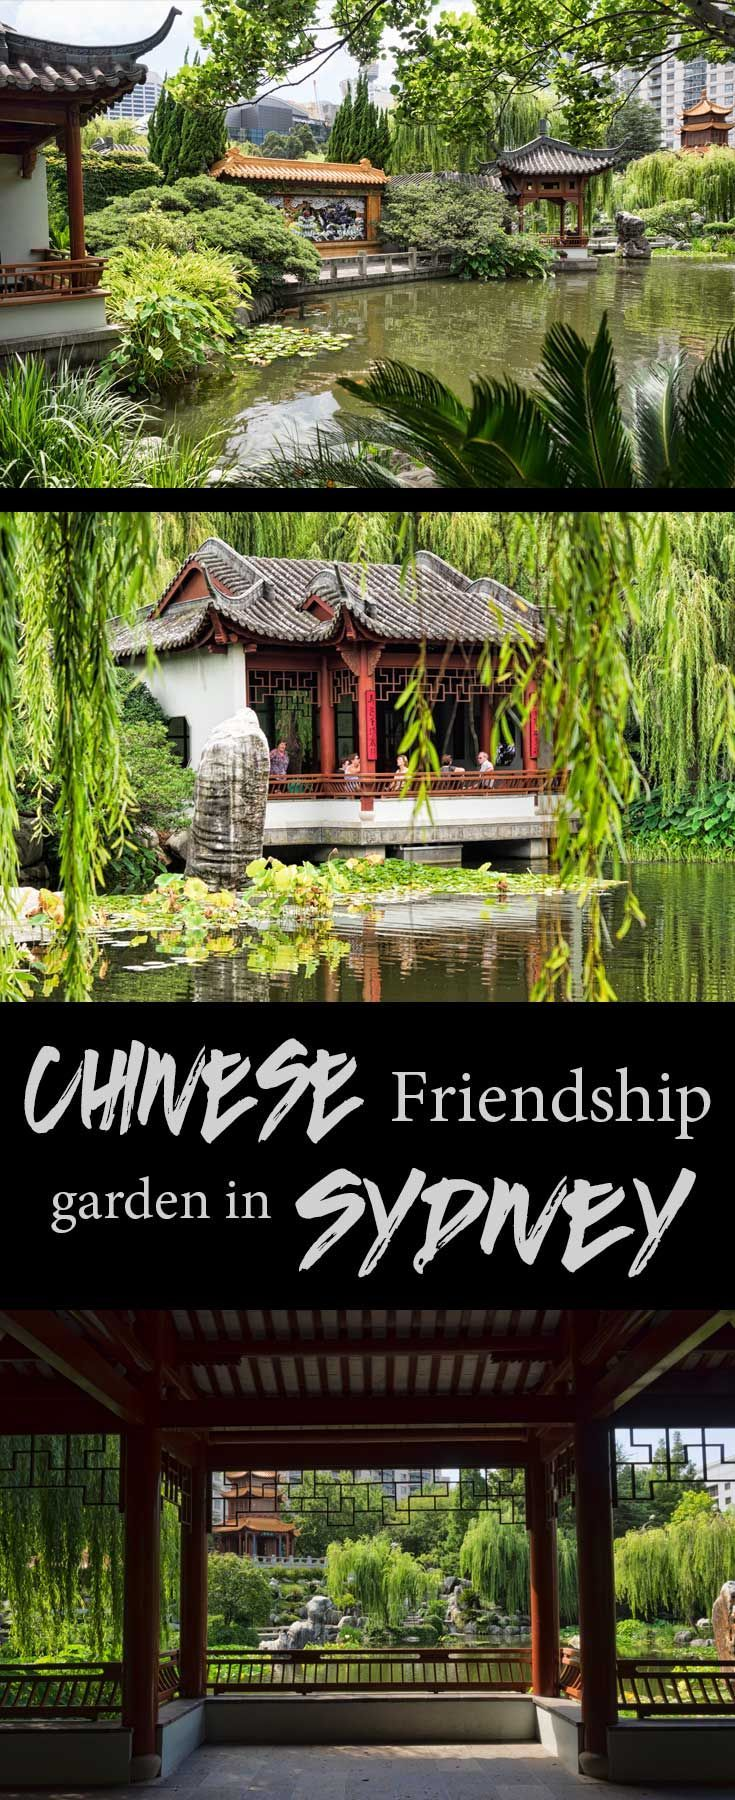 The Chinese friendship gardens are an oasis of calm in the middle of Sydney city, Australia.: